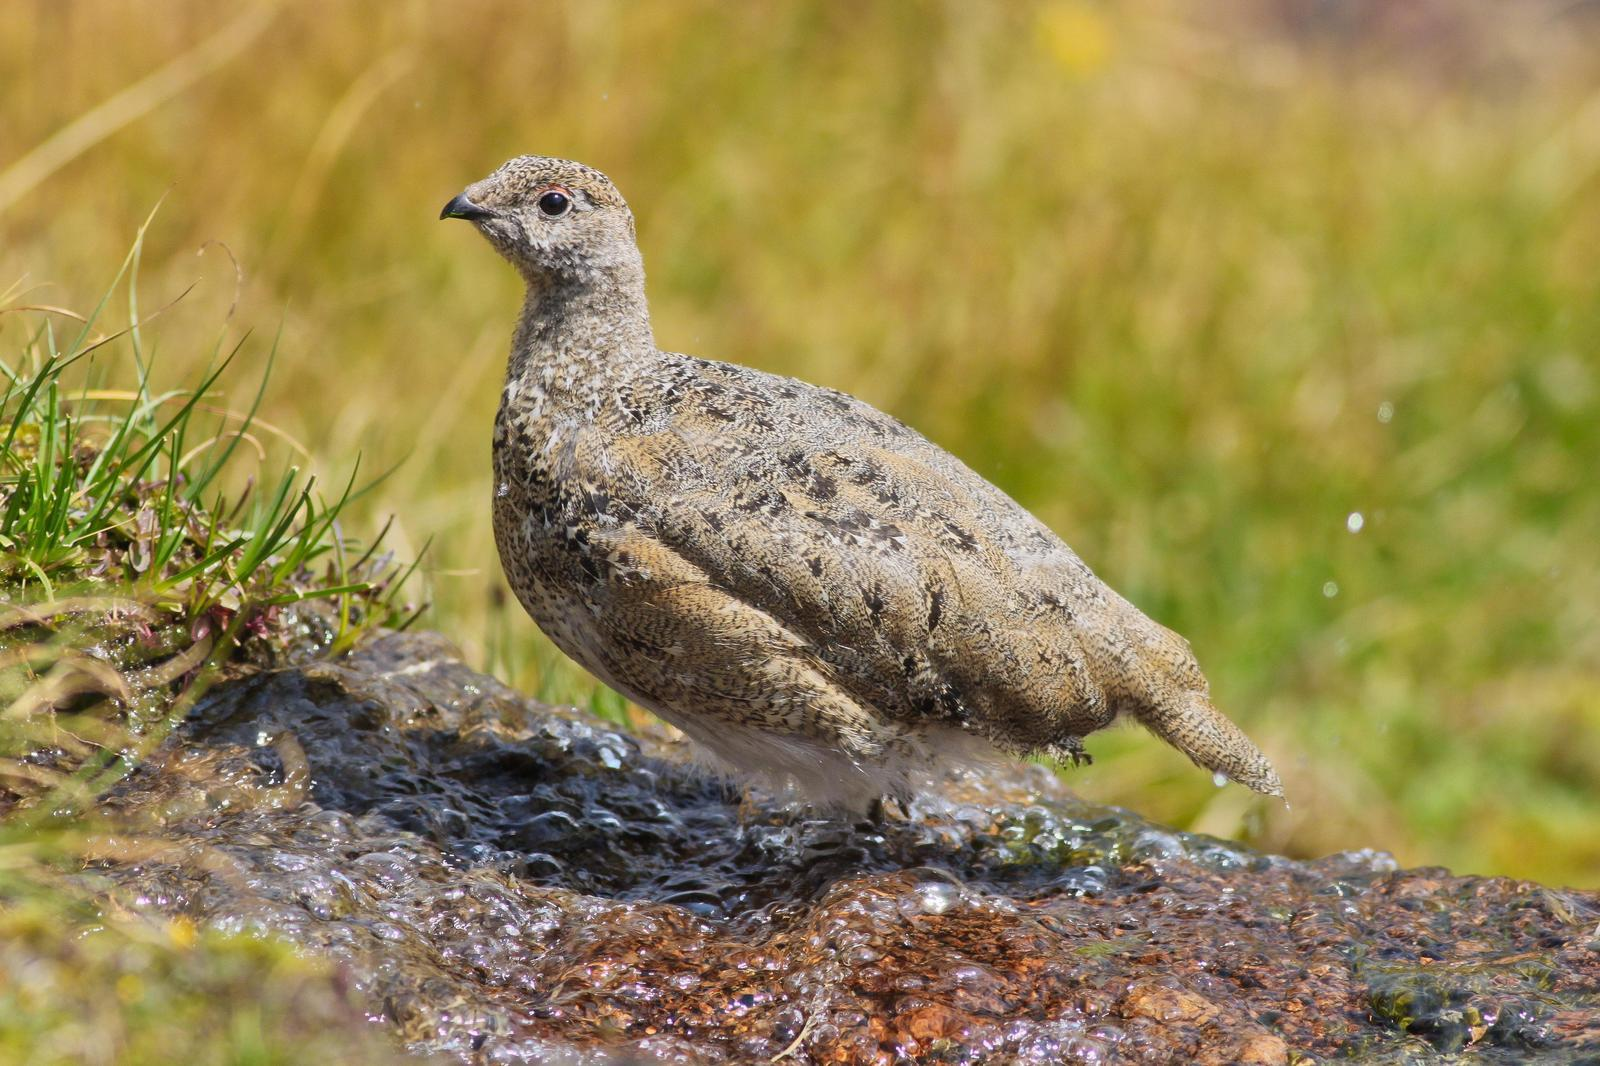 White-tailed Ptarmigan Photo by Tom Ford-Hutchinson